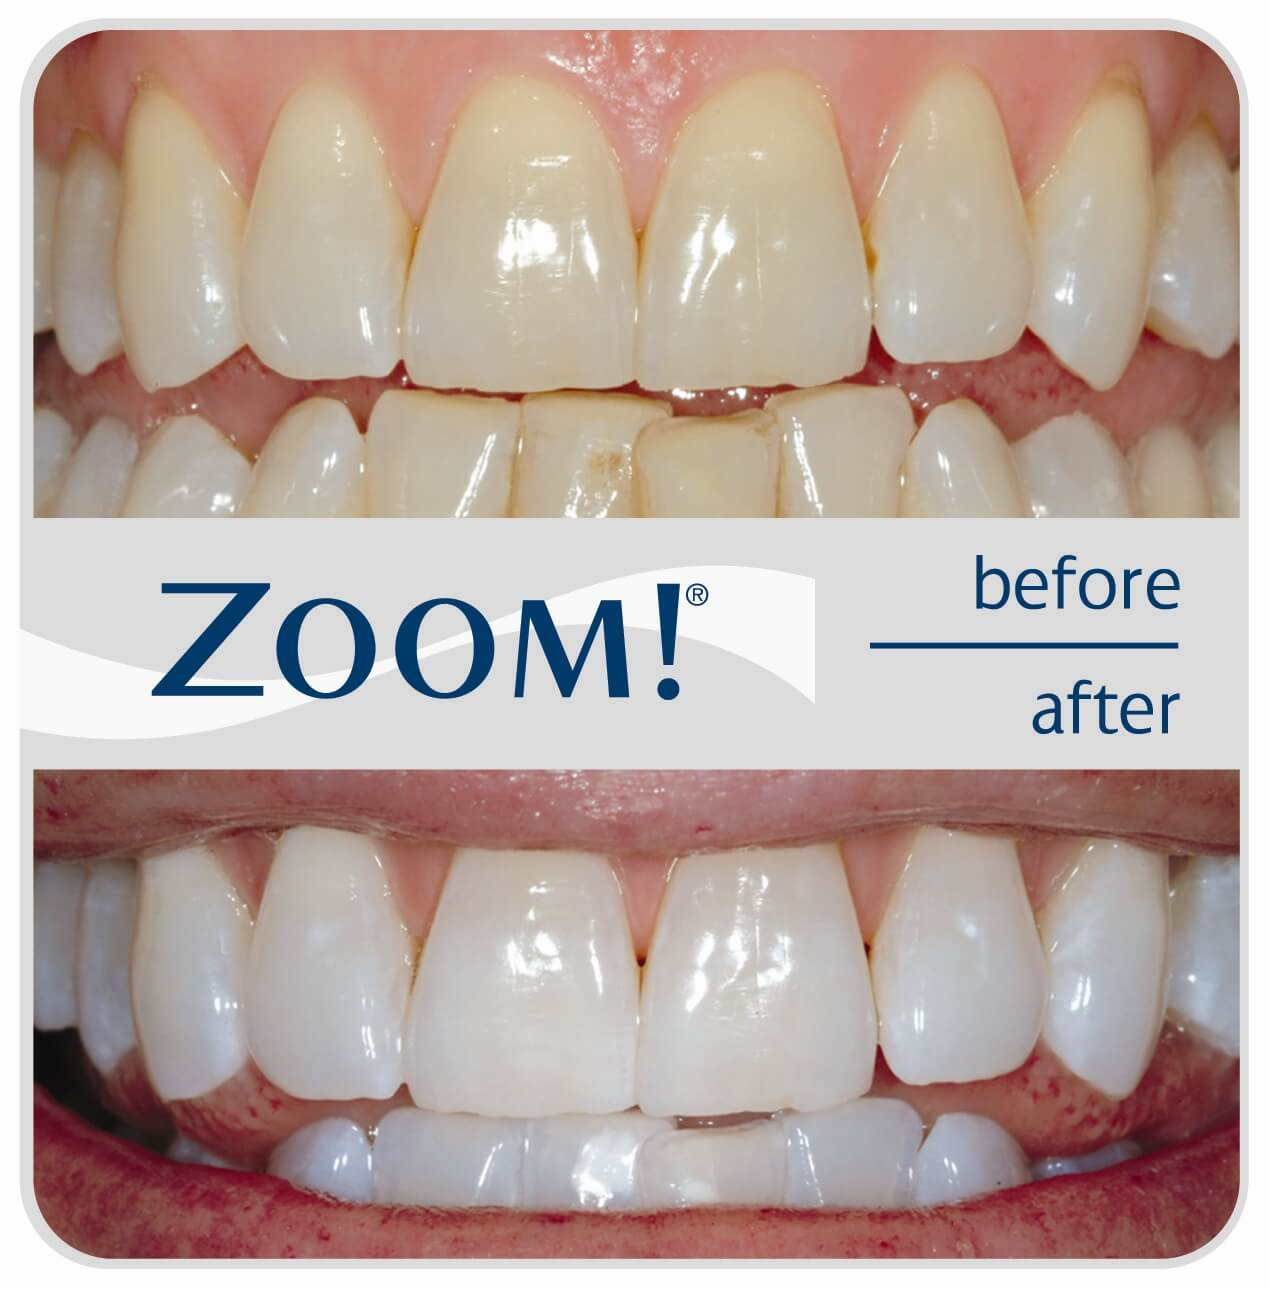 Zoom Teeth Whitening Costs Reviews The Dental Guide